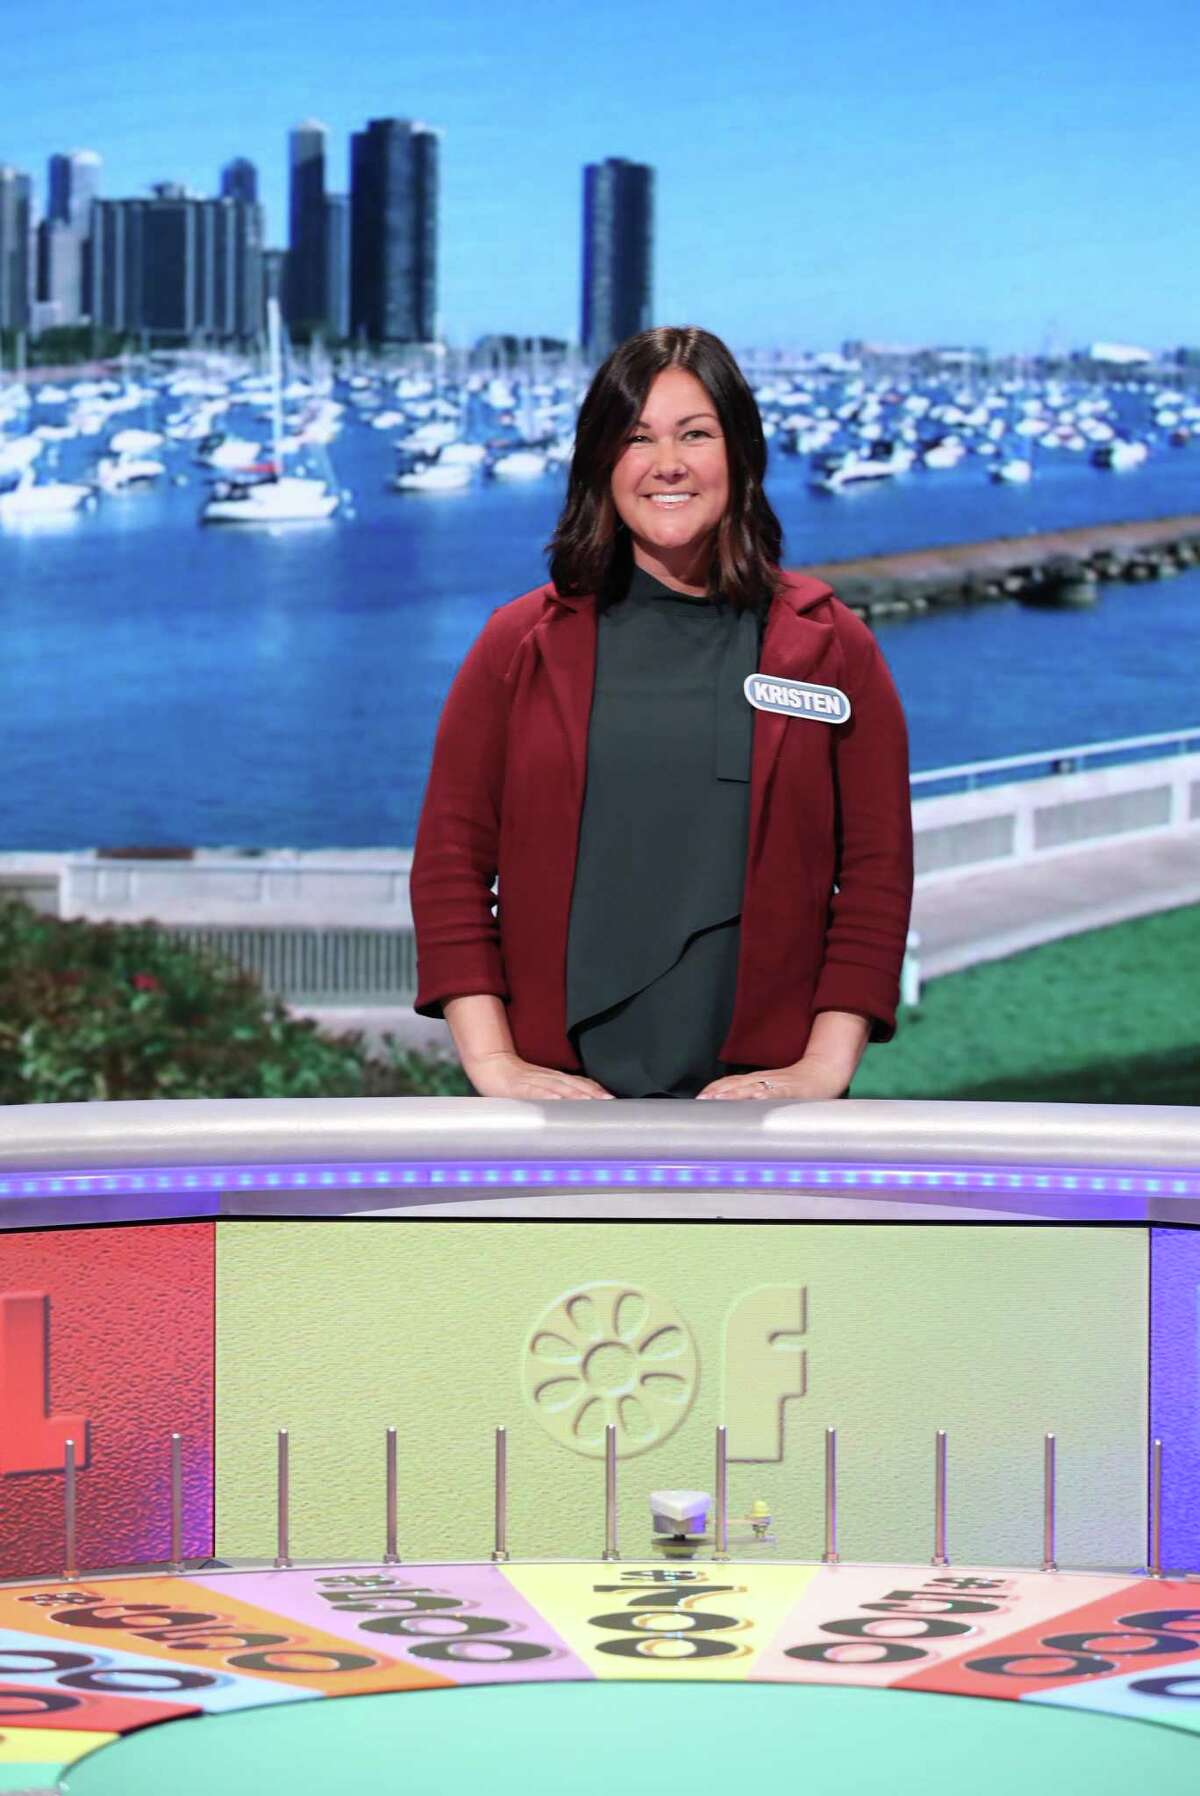 Elizabeth Shelton School first grade teacher Kristen Zack on the set of Wheel of Fortune. She appeared on the ABC show Tuesday, Nov. 16.